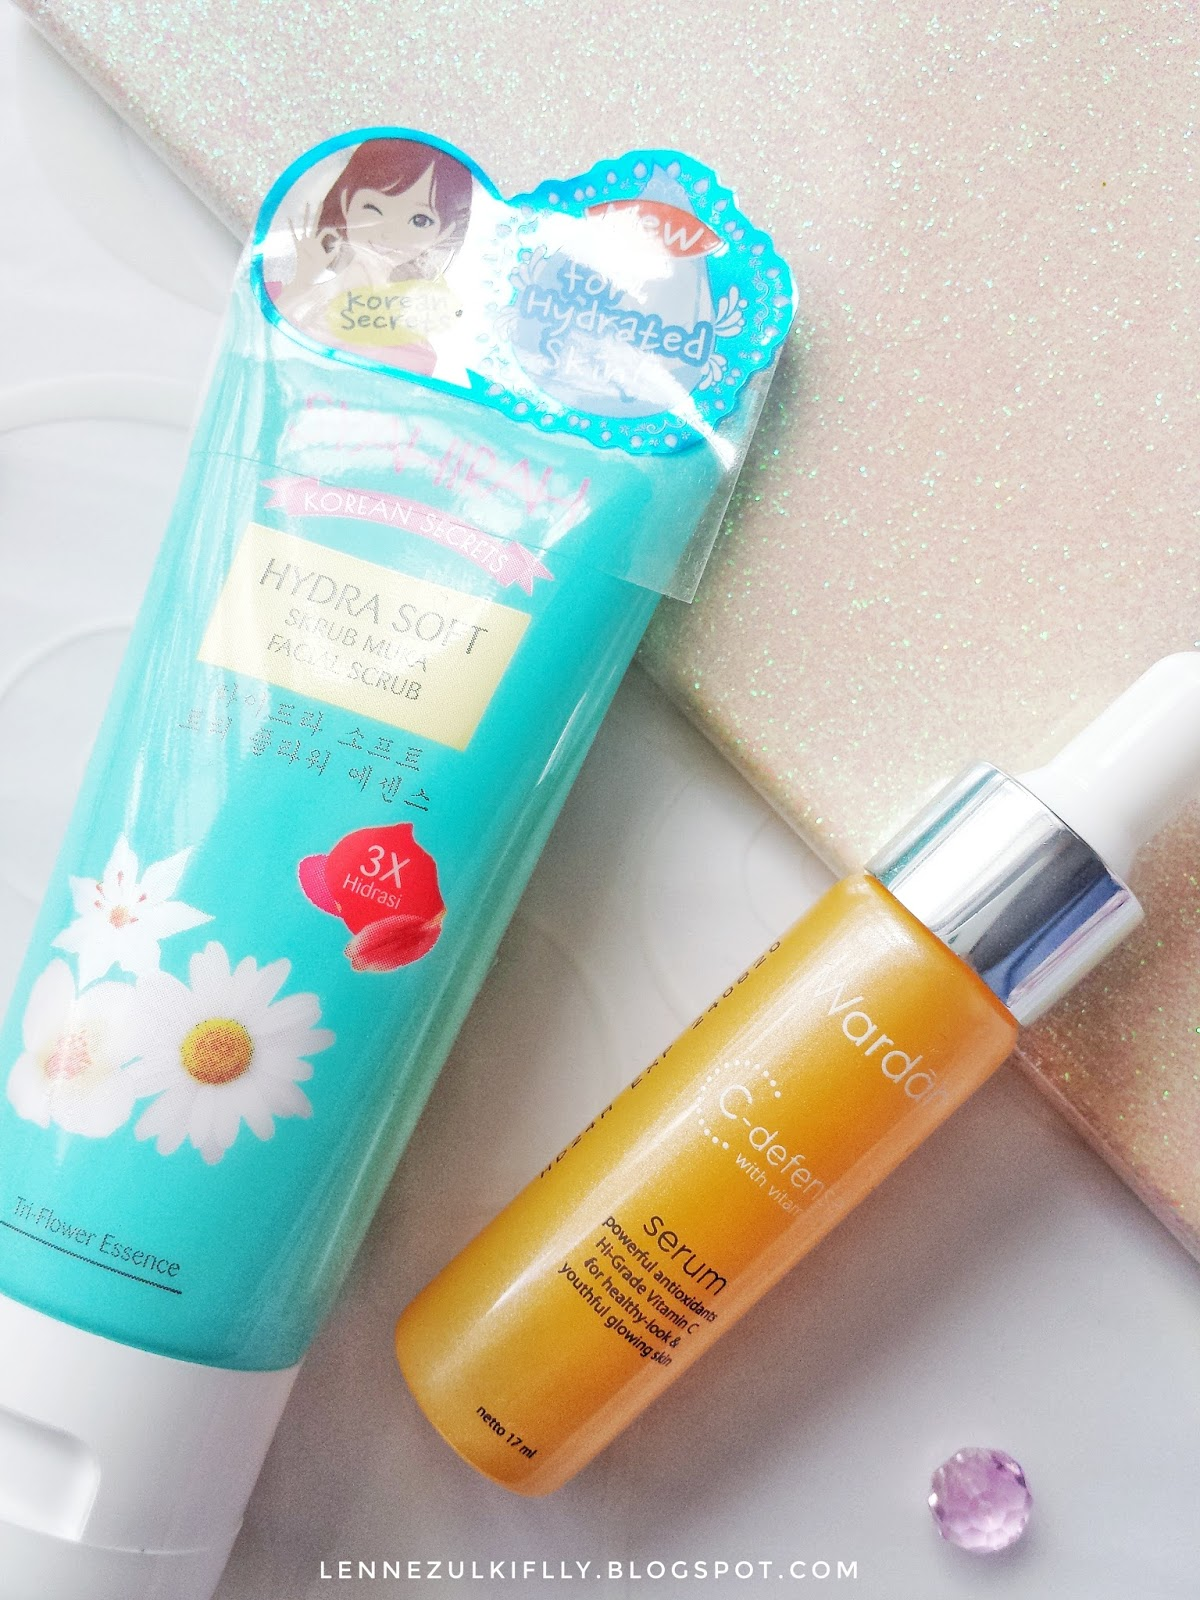 What's New In My Skincare | LENNE ZULKIFLLY